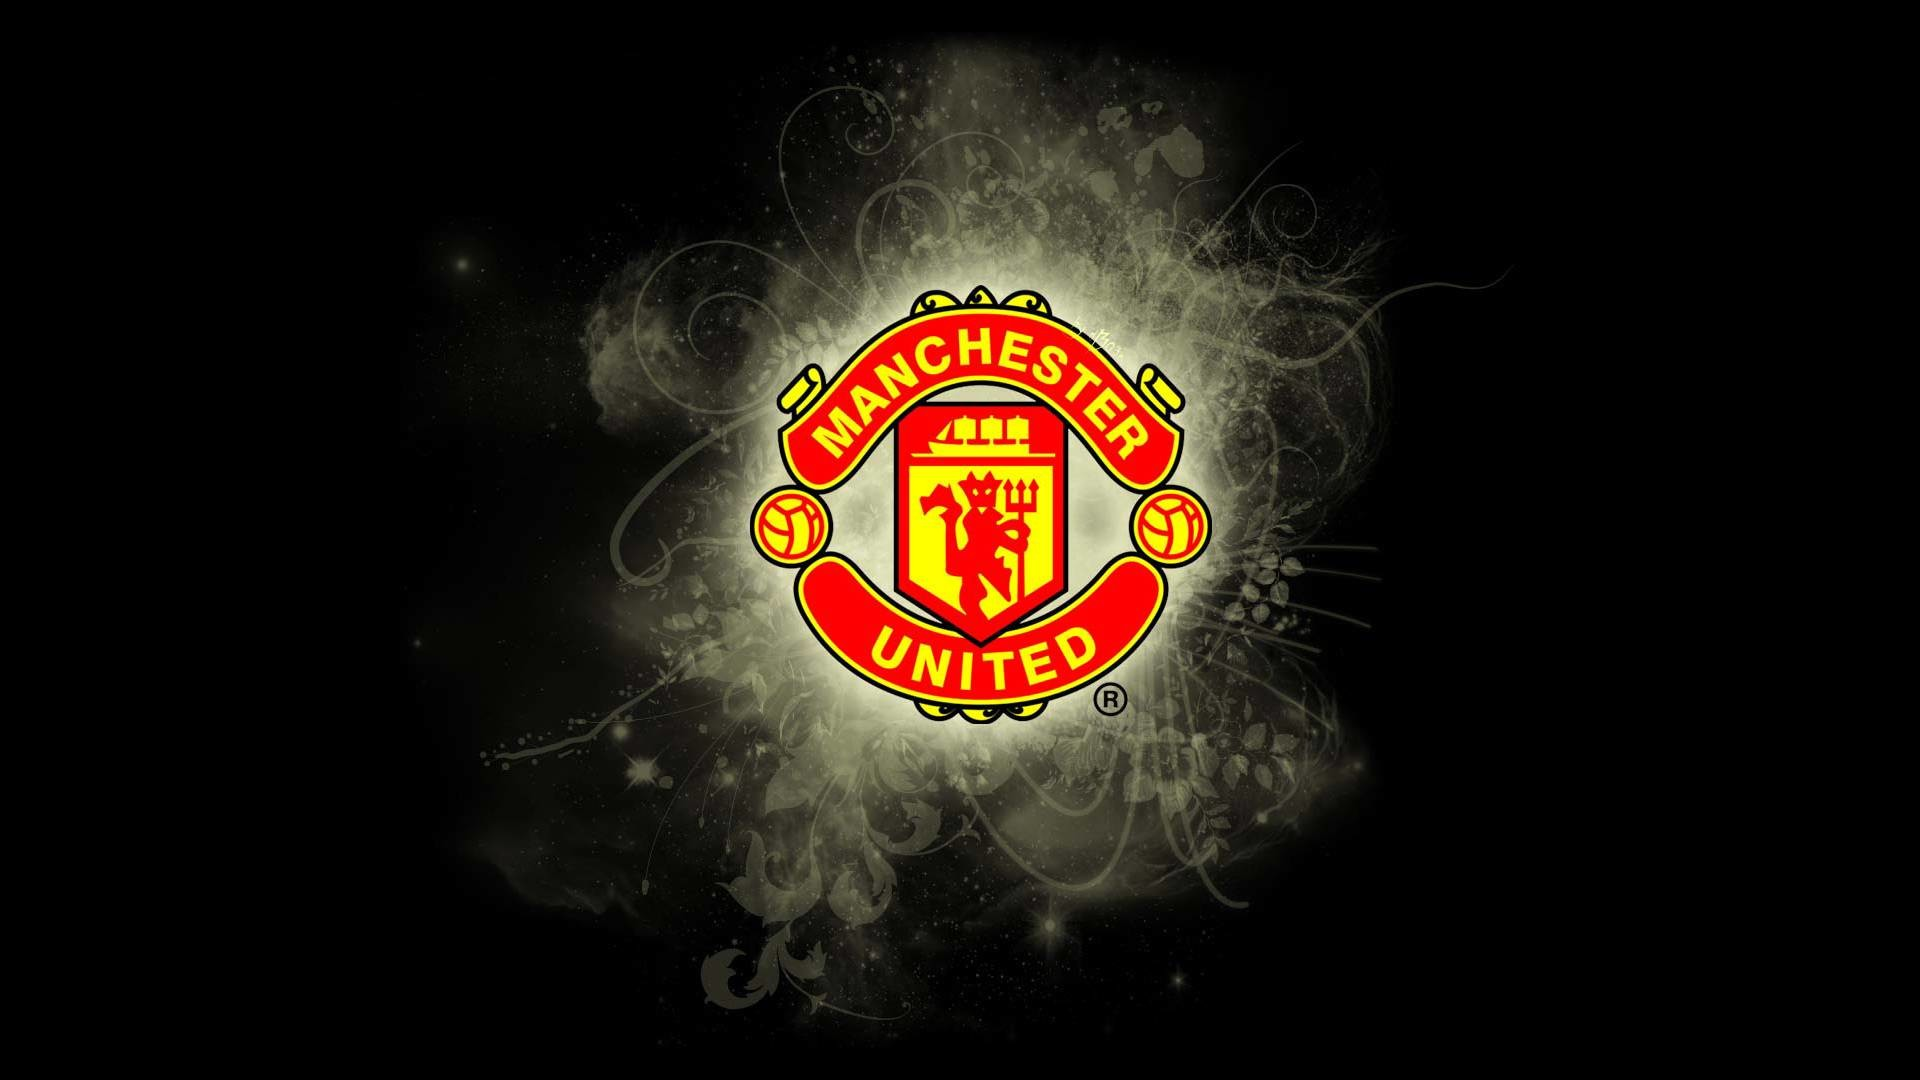 Manchester United Wallpaper For Iphone 4 Wallpaper | Football .